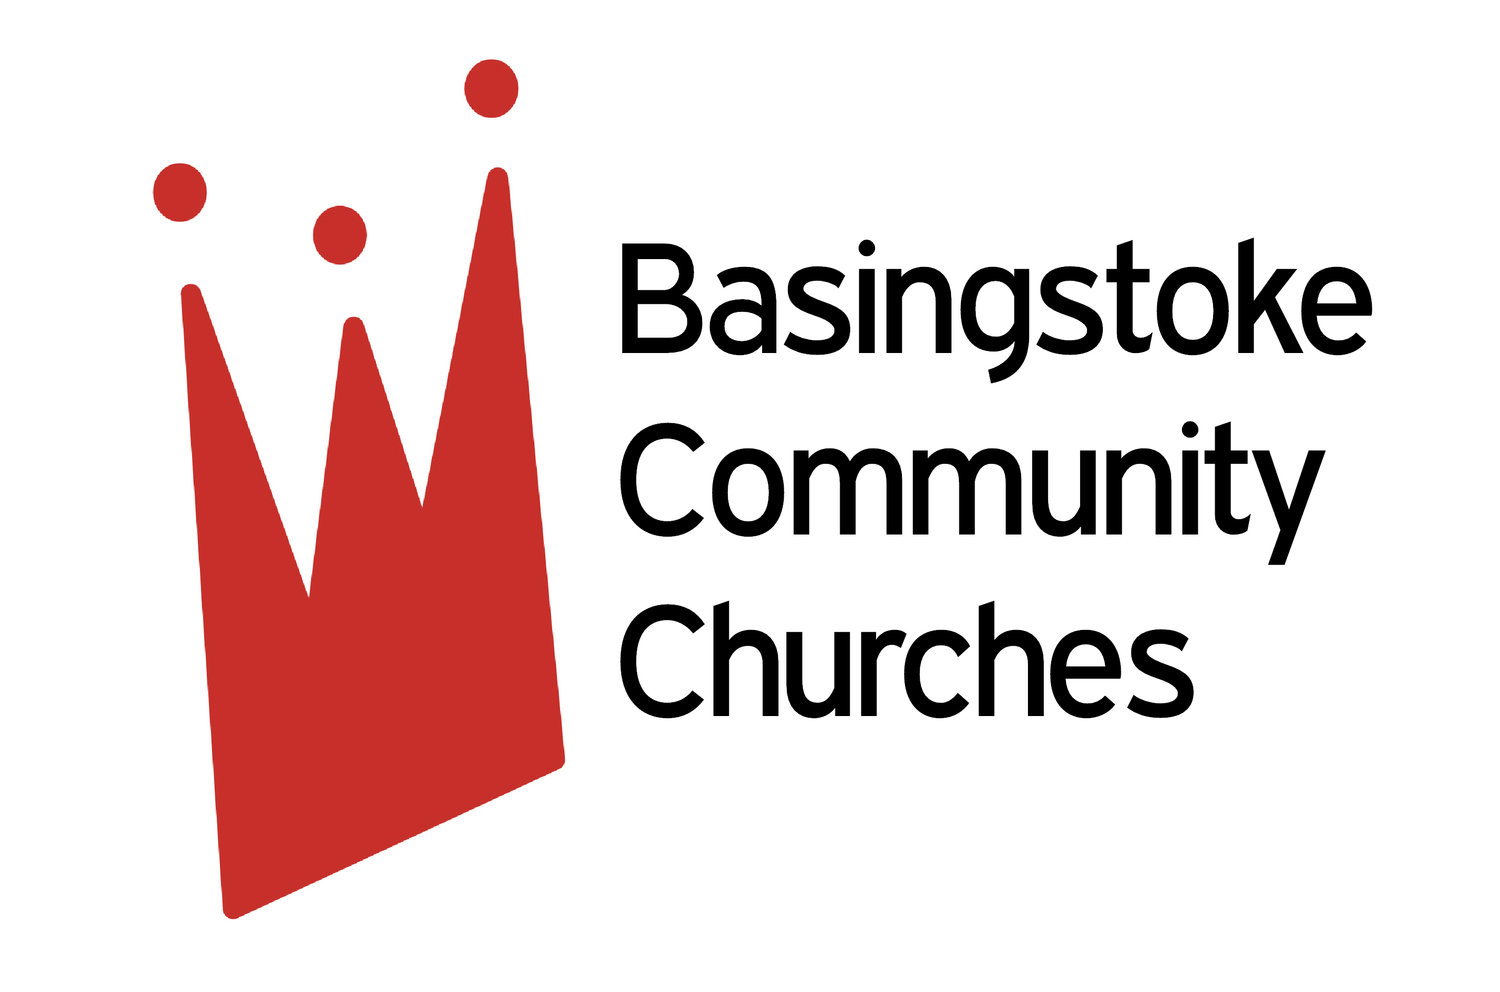 Basingstoke Community Churches